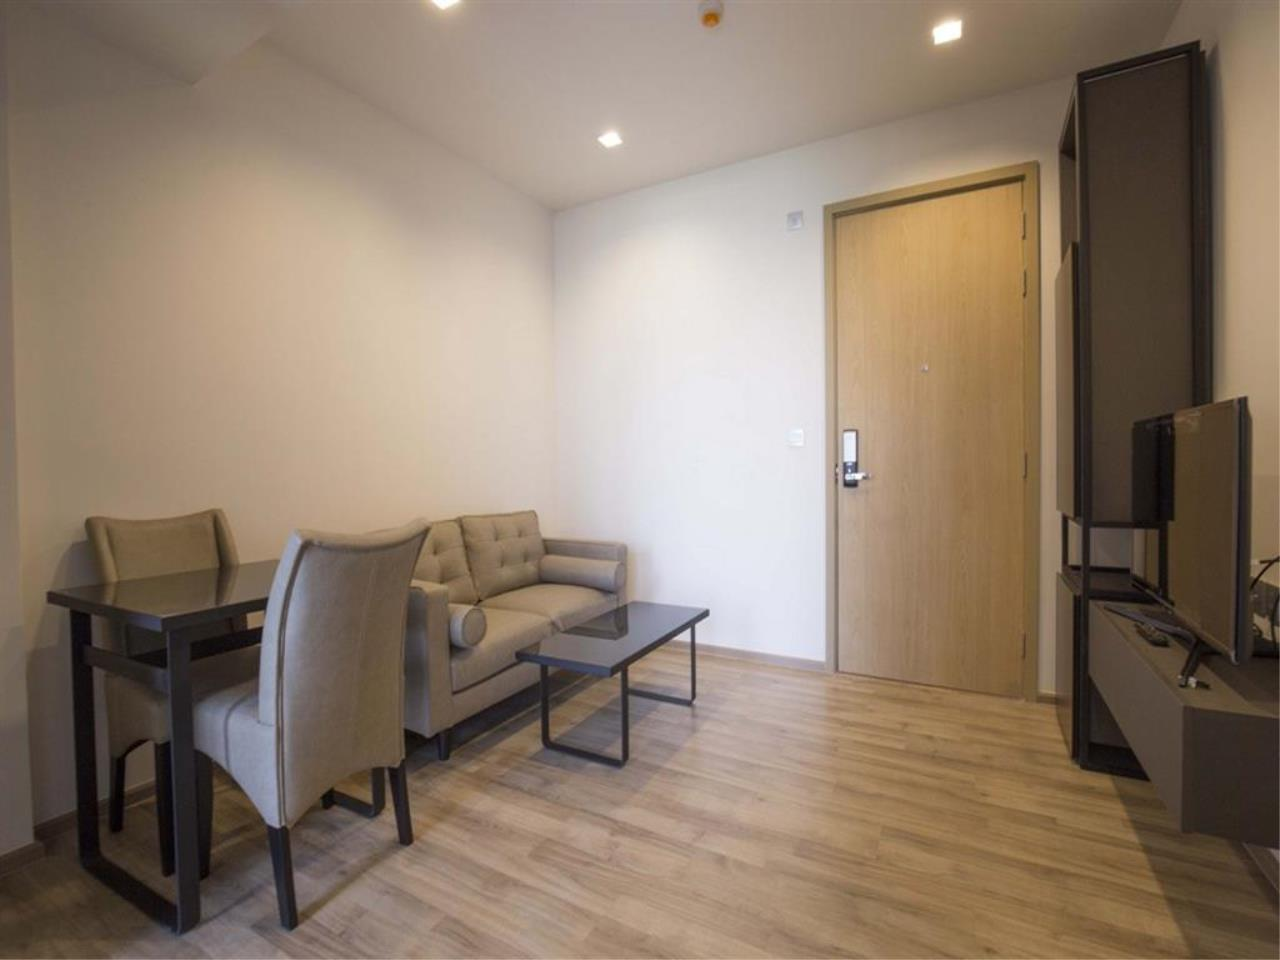 Plus Property Agency's Rent : CD177316 THE LINE JATUJAK-MOCHIT Condominium Paholyothin Bangkok 11